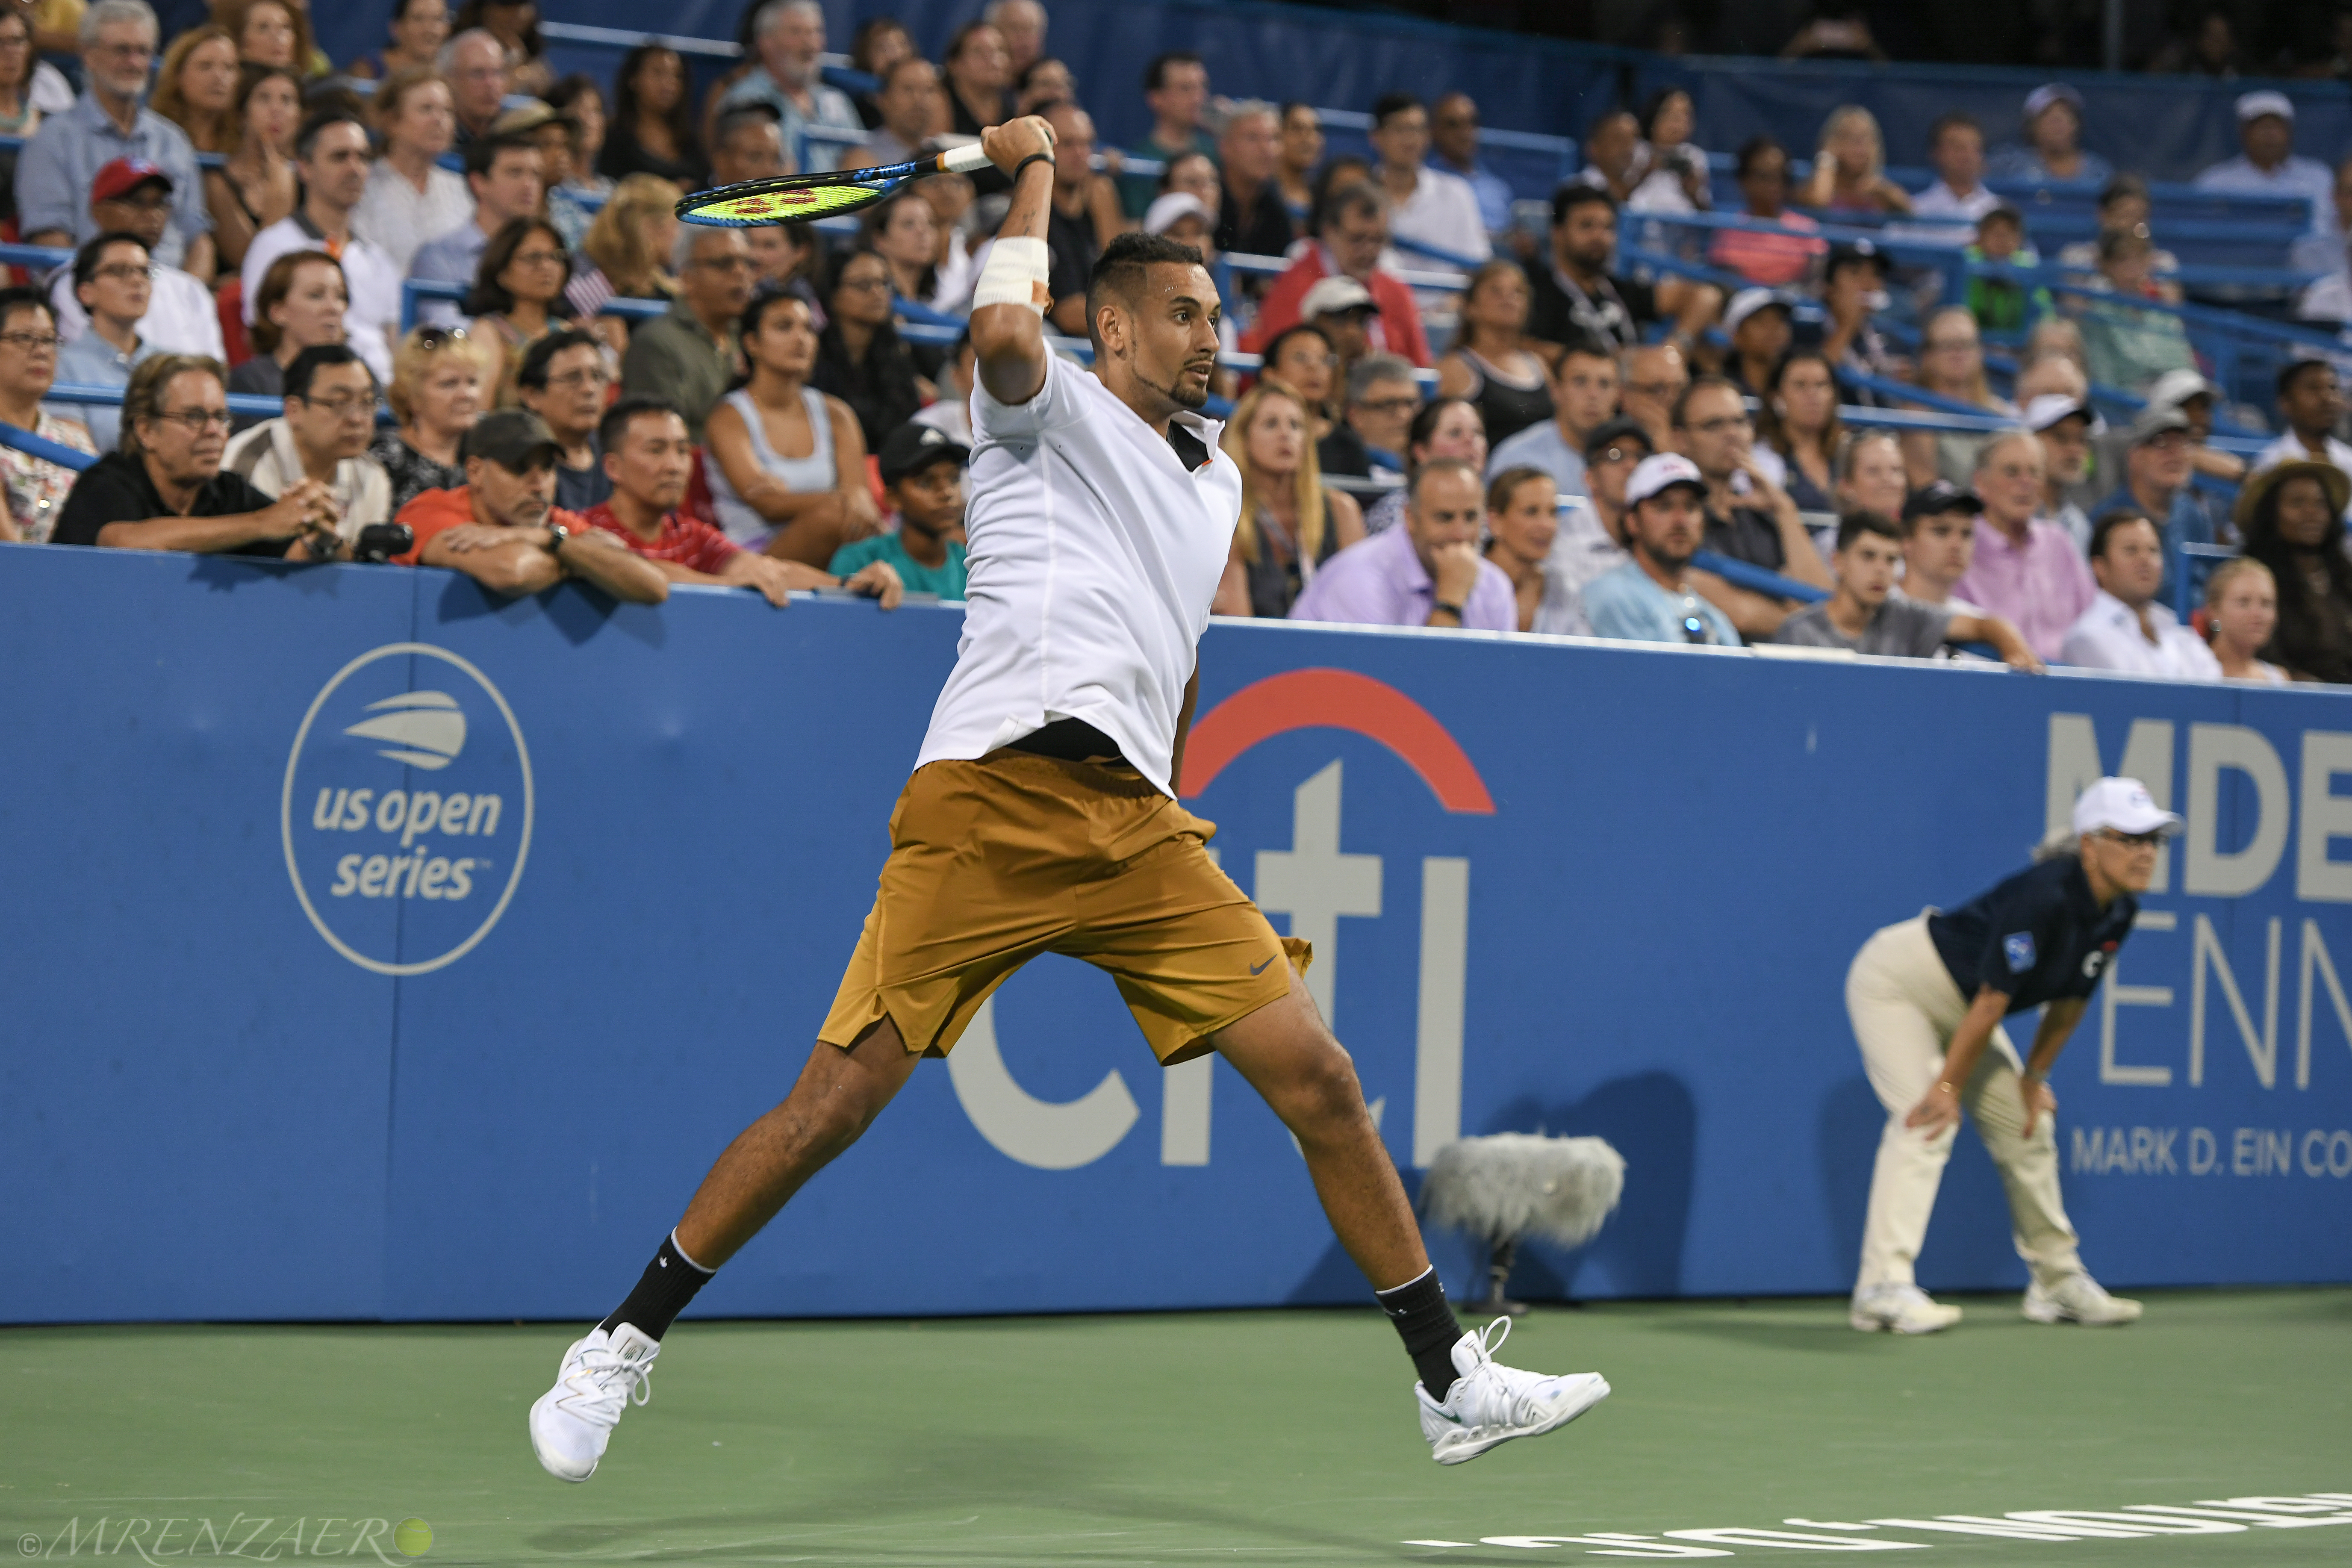 Nick Kyrgios, 2019 Citi Open (Photo: Mike Renz)